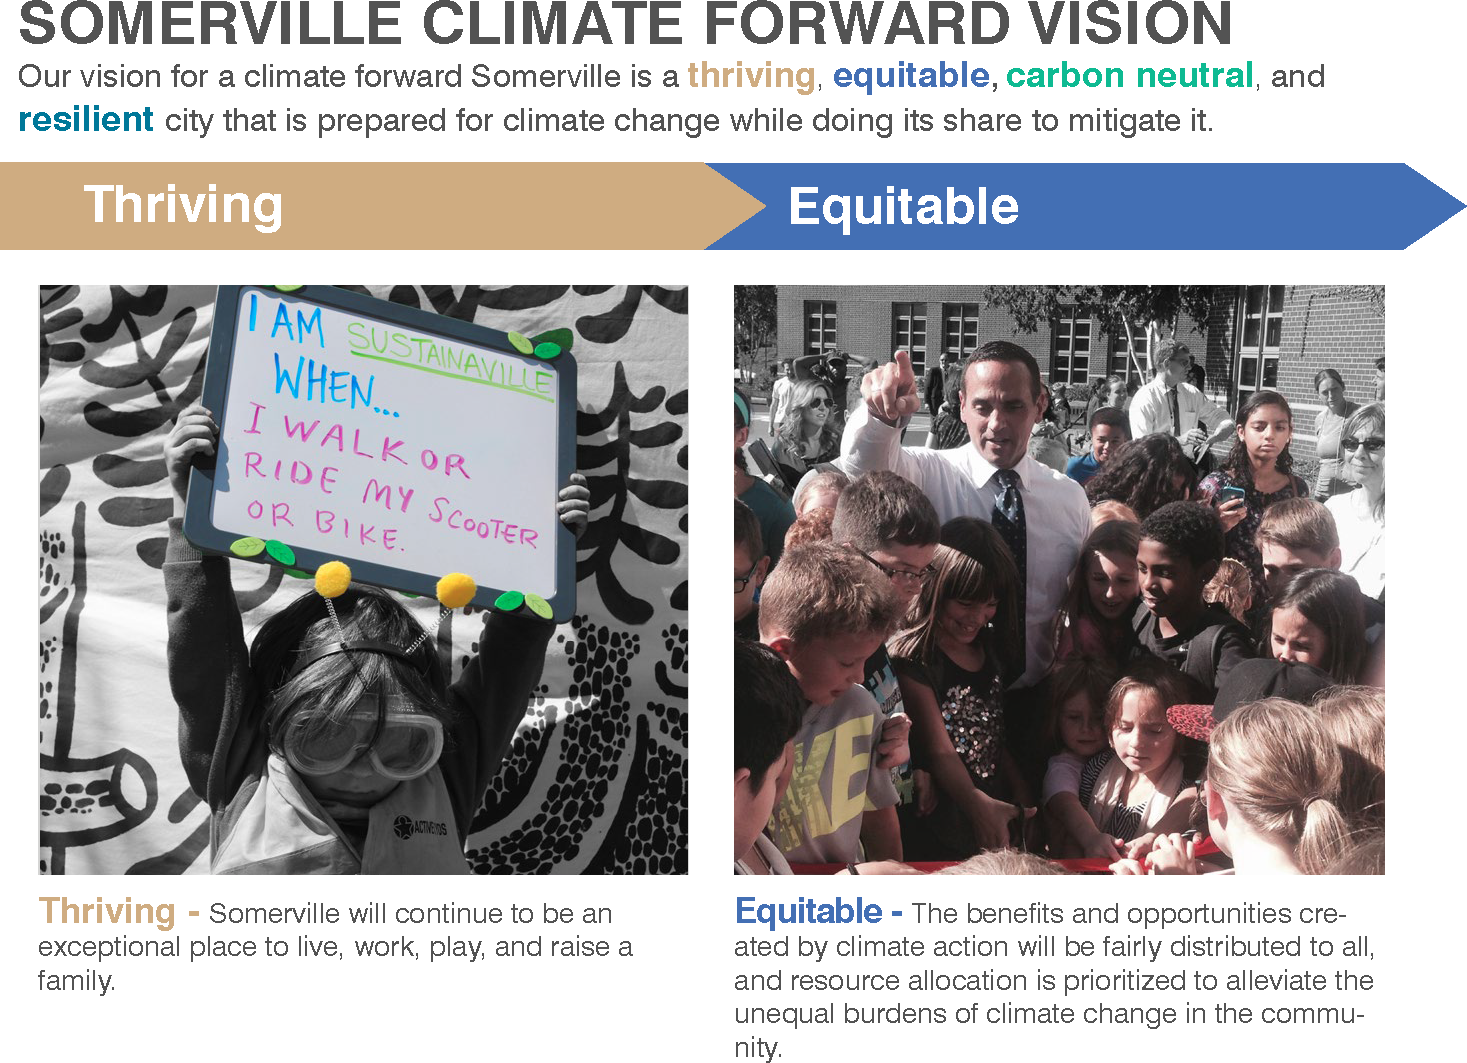 Our vision for a climate forward Somerville is thriving, equitable, carbon neutral, and resilient city.